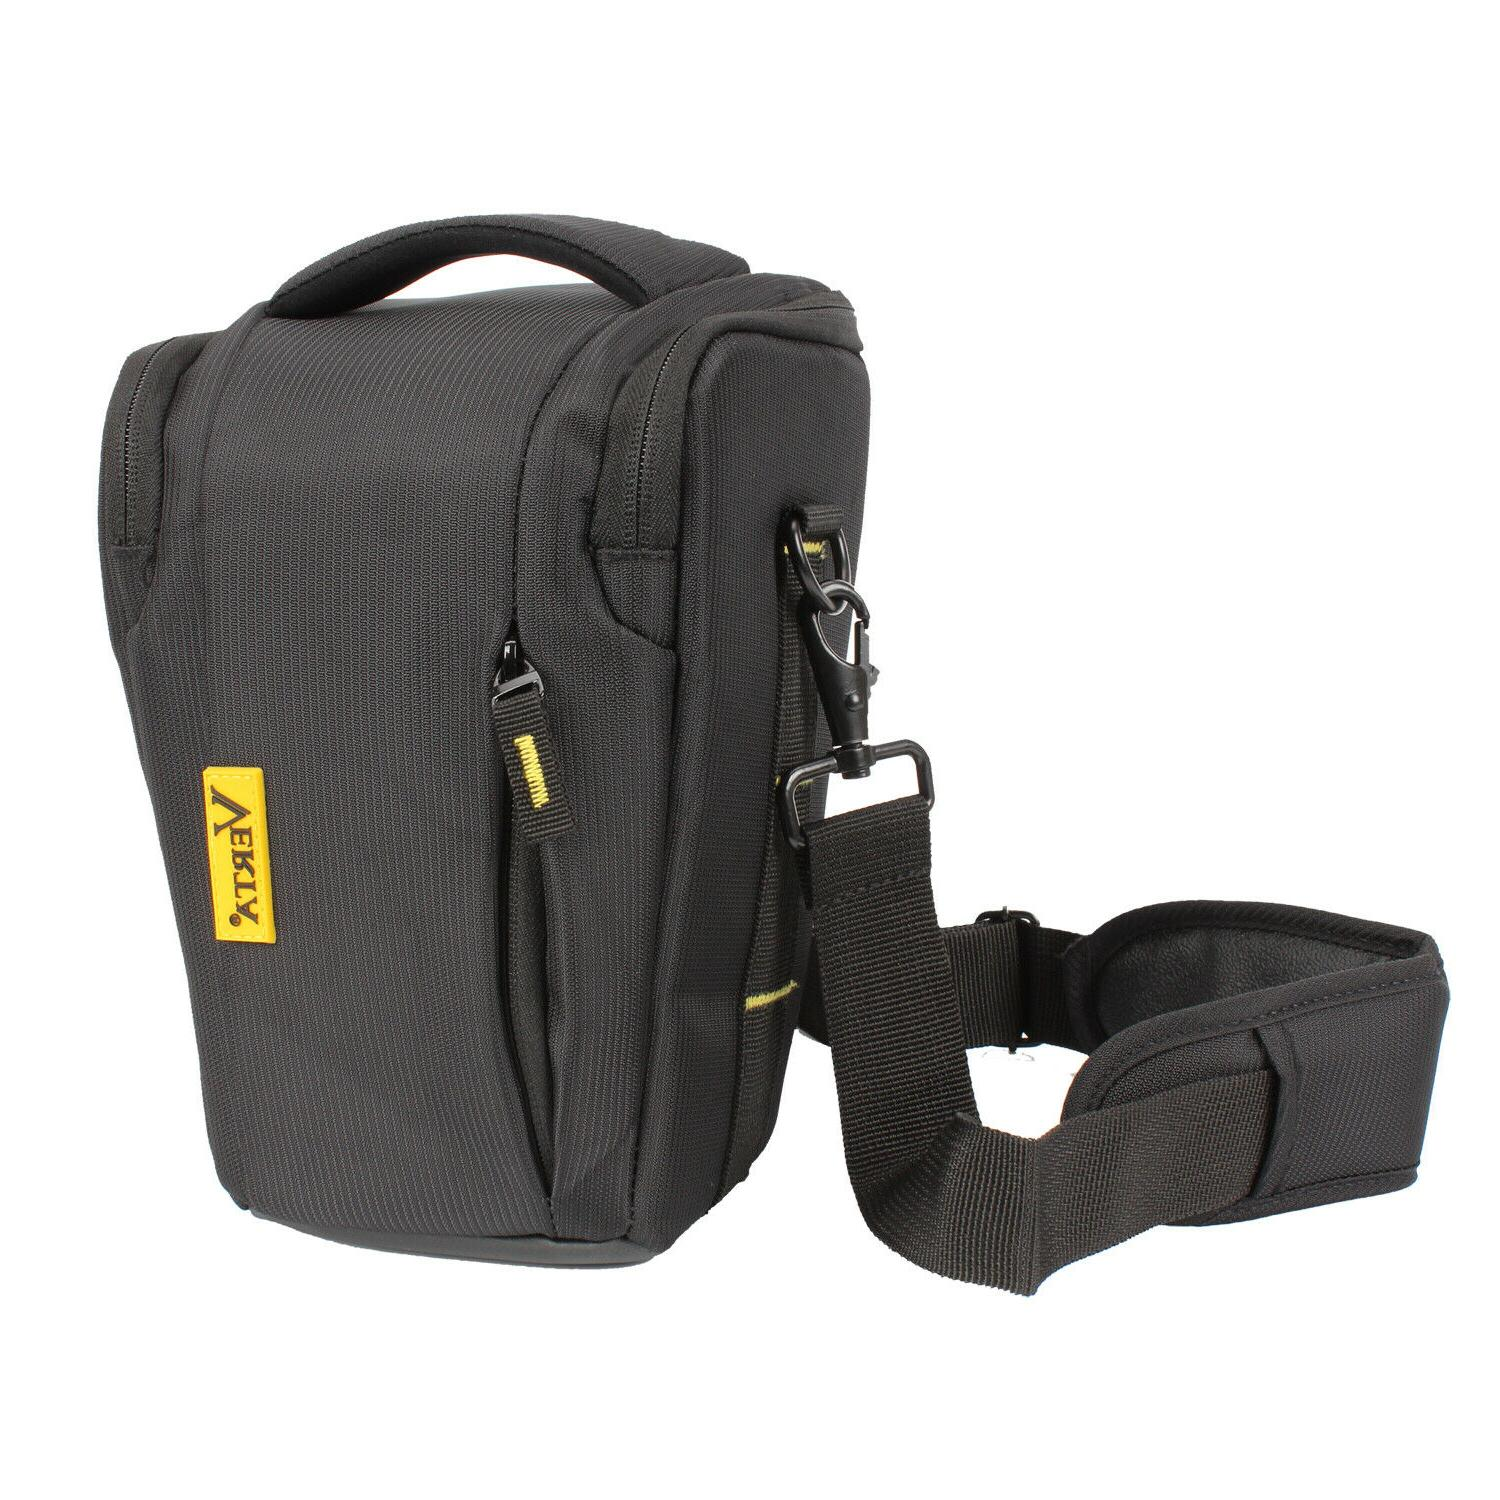 Top-Load Bag Compact Large Size SLR Waist